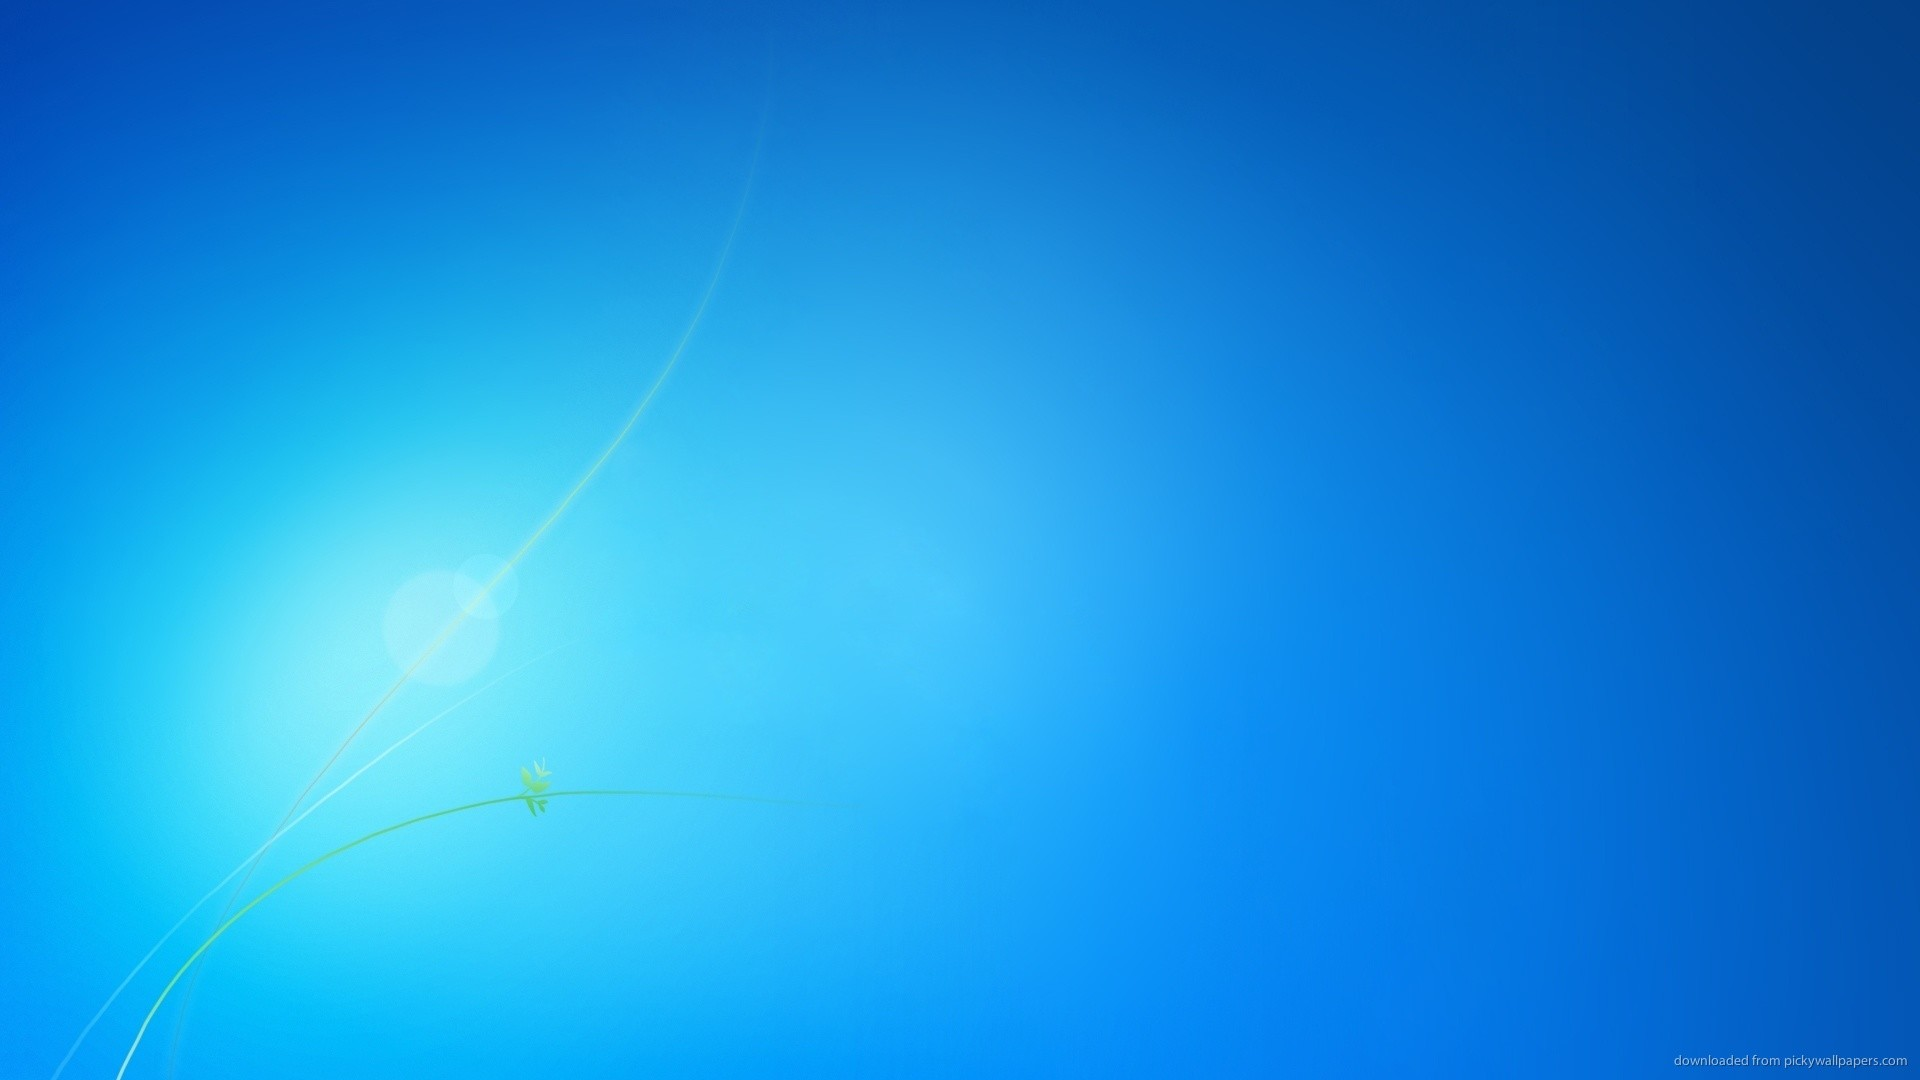 1920x1080 windows 7 wallpaper: Bsod Wallpaper 1920x1080 (70+ Images